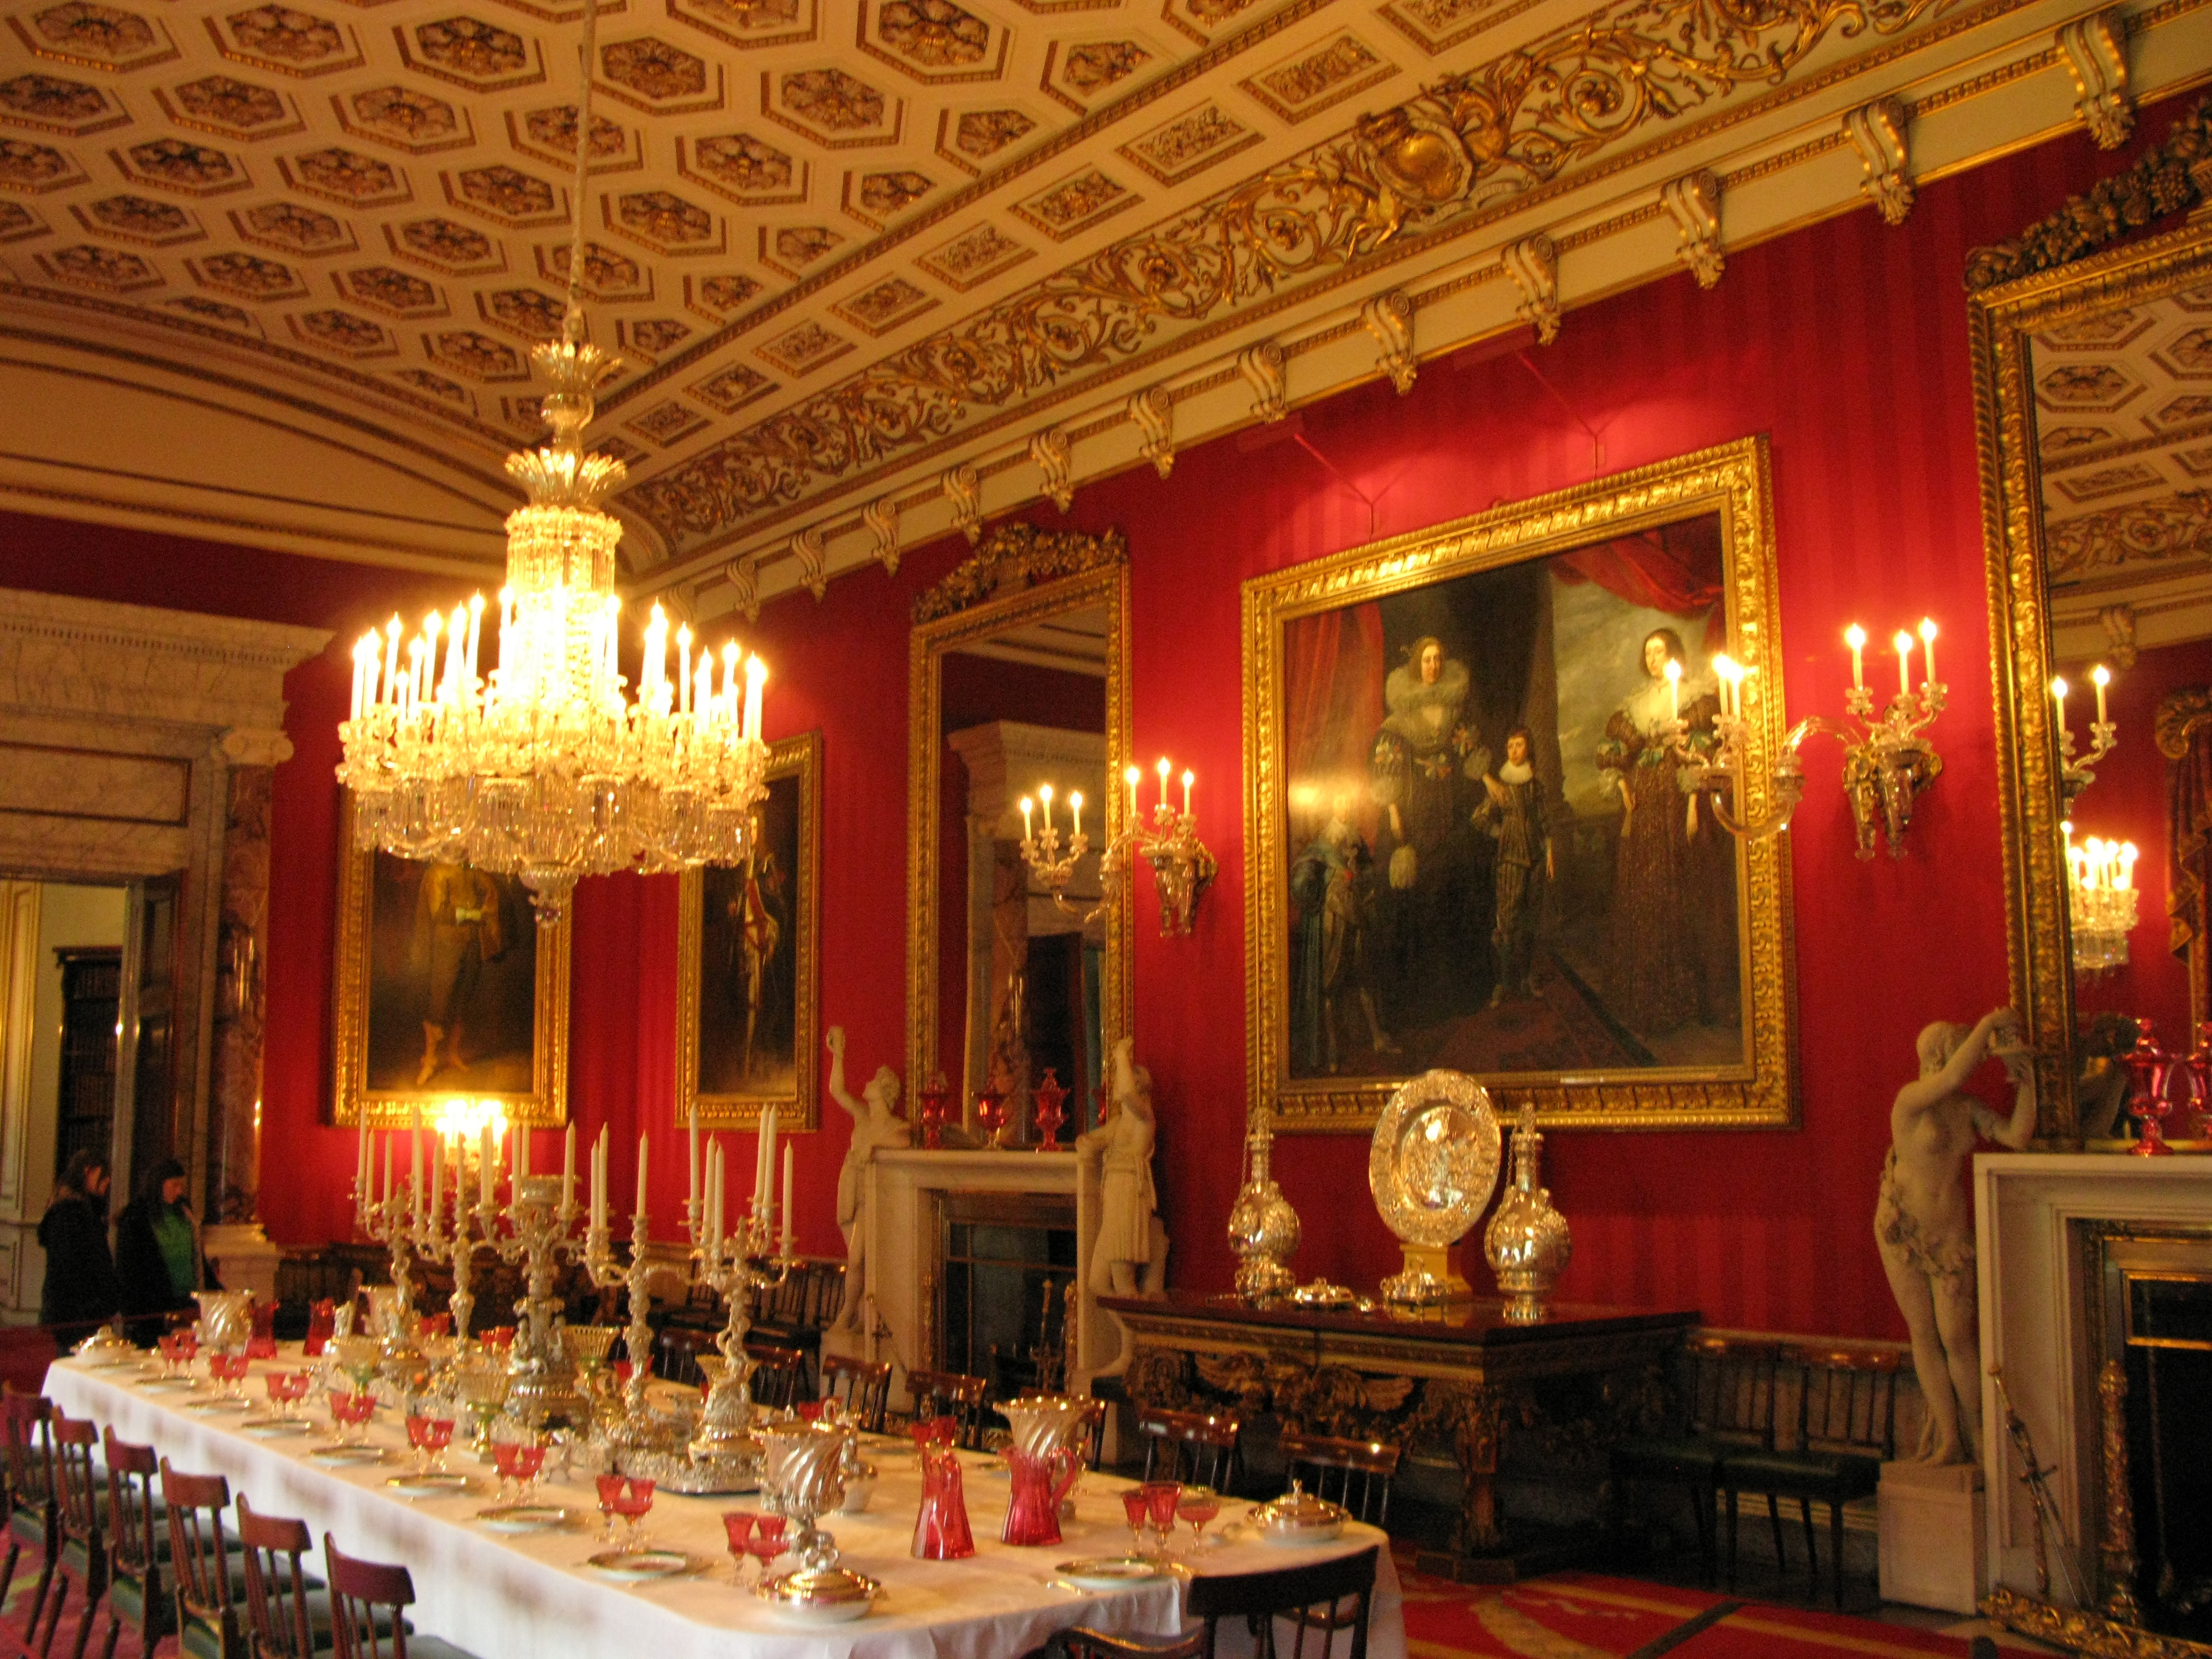 FileChatsworth House Dining Roomjpg Wikimedia Commons